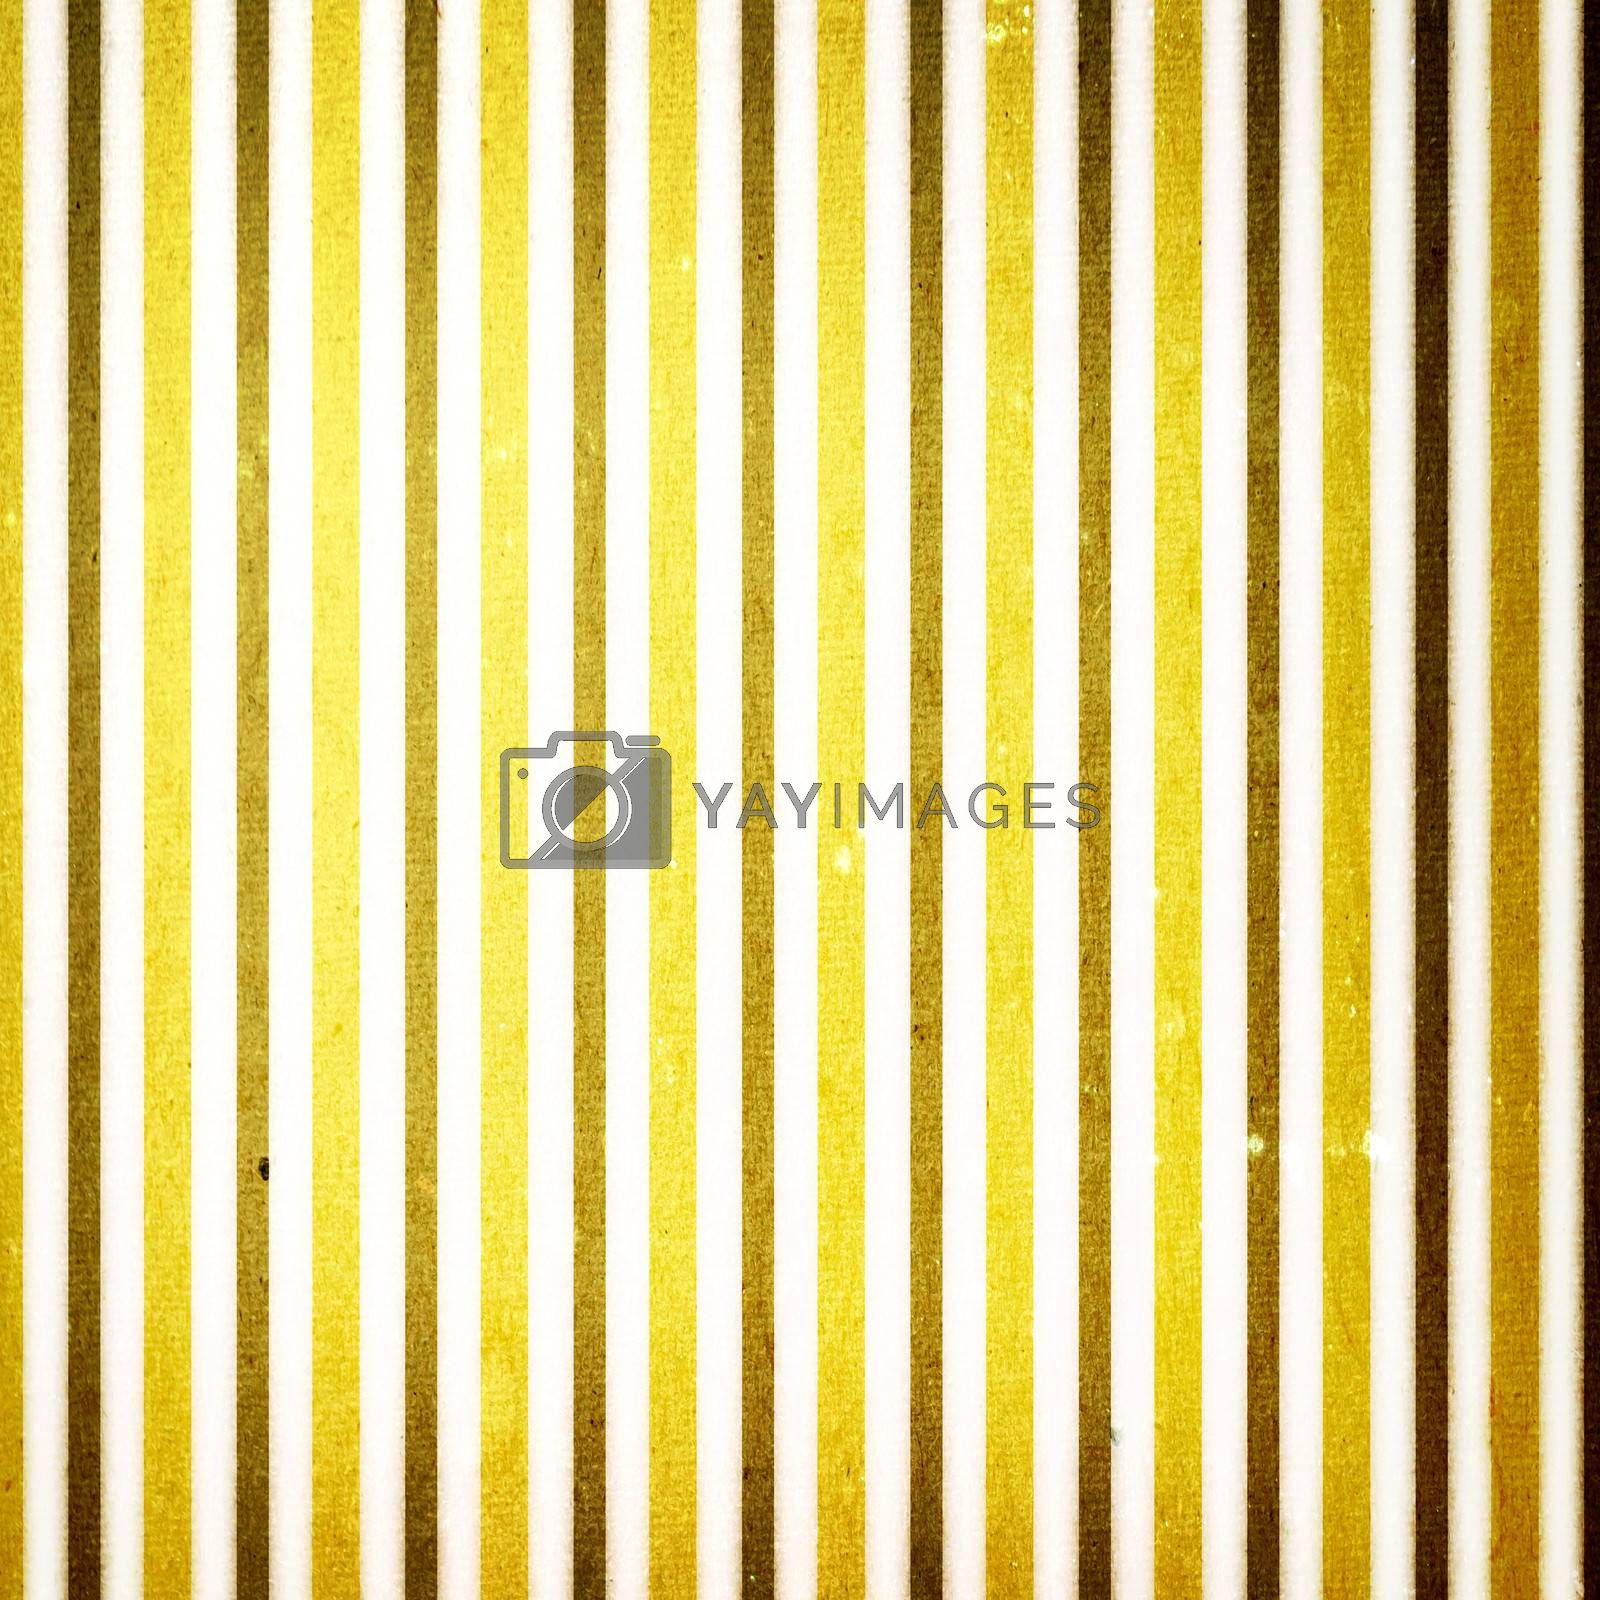 Royalty free image of Yellow and white striped background by melpomene